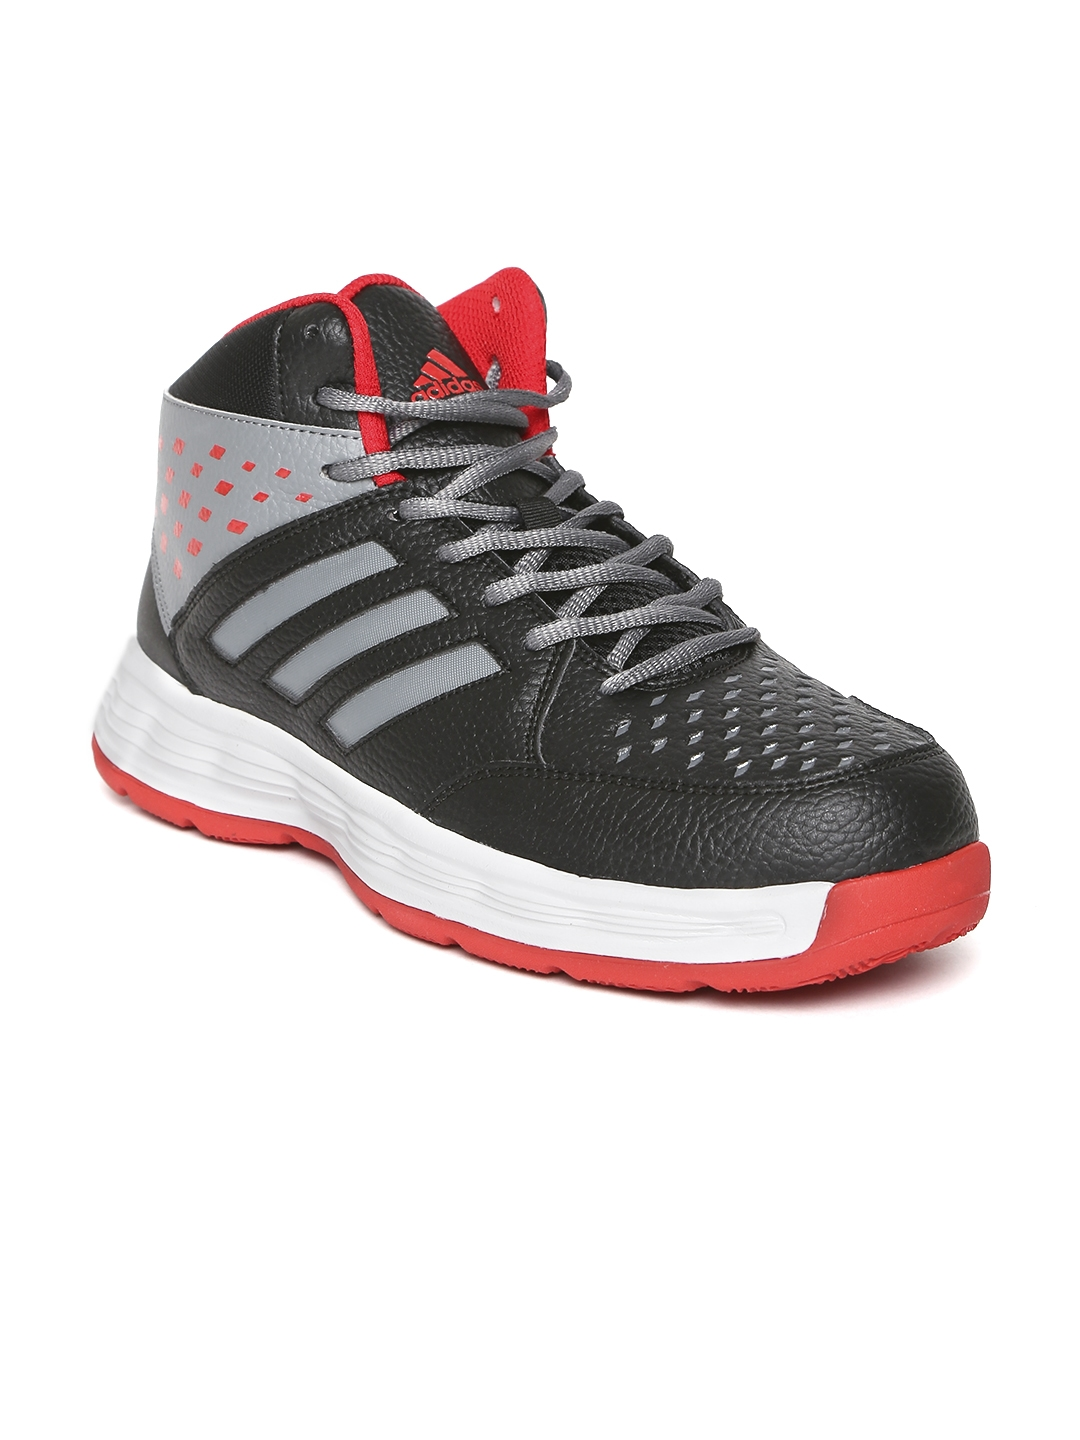 a8a1c4794df6 Buy ADIDAS Men Black Basecut Basketball Shoes - Sports Shoes for Men ...